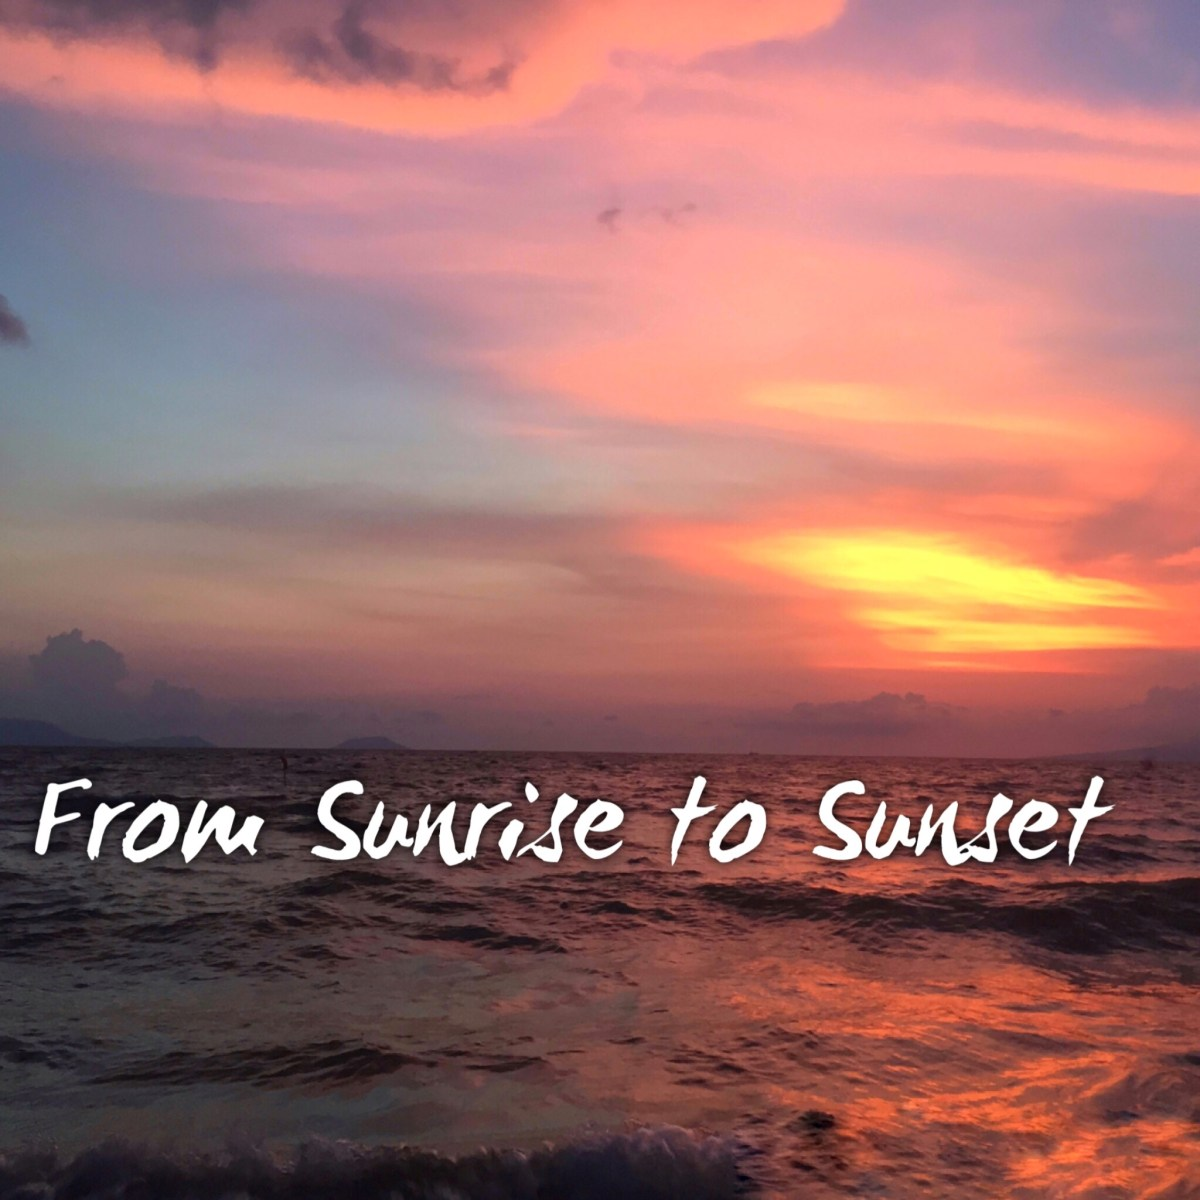 From Sunrise to Sunset